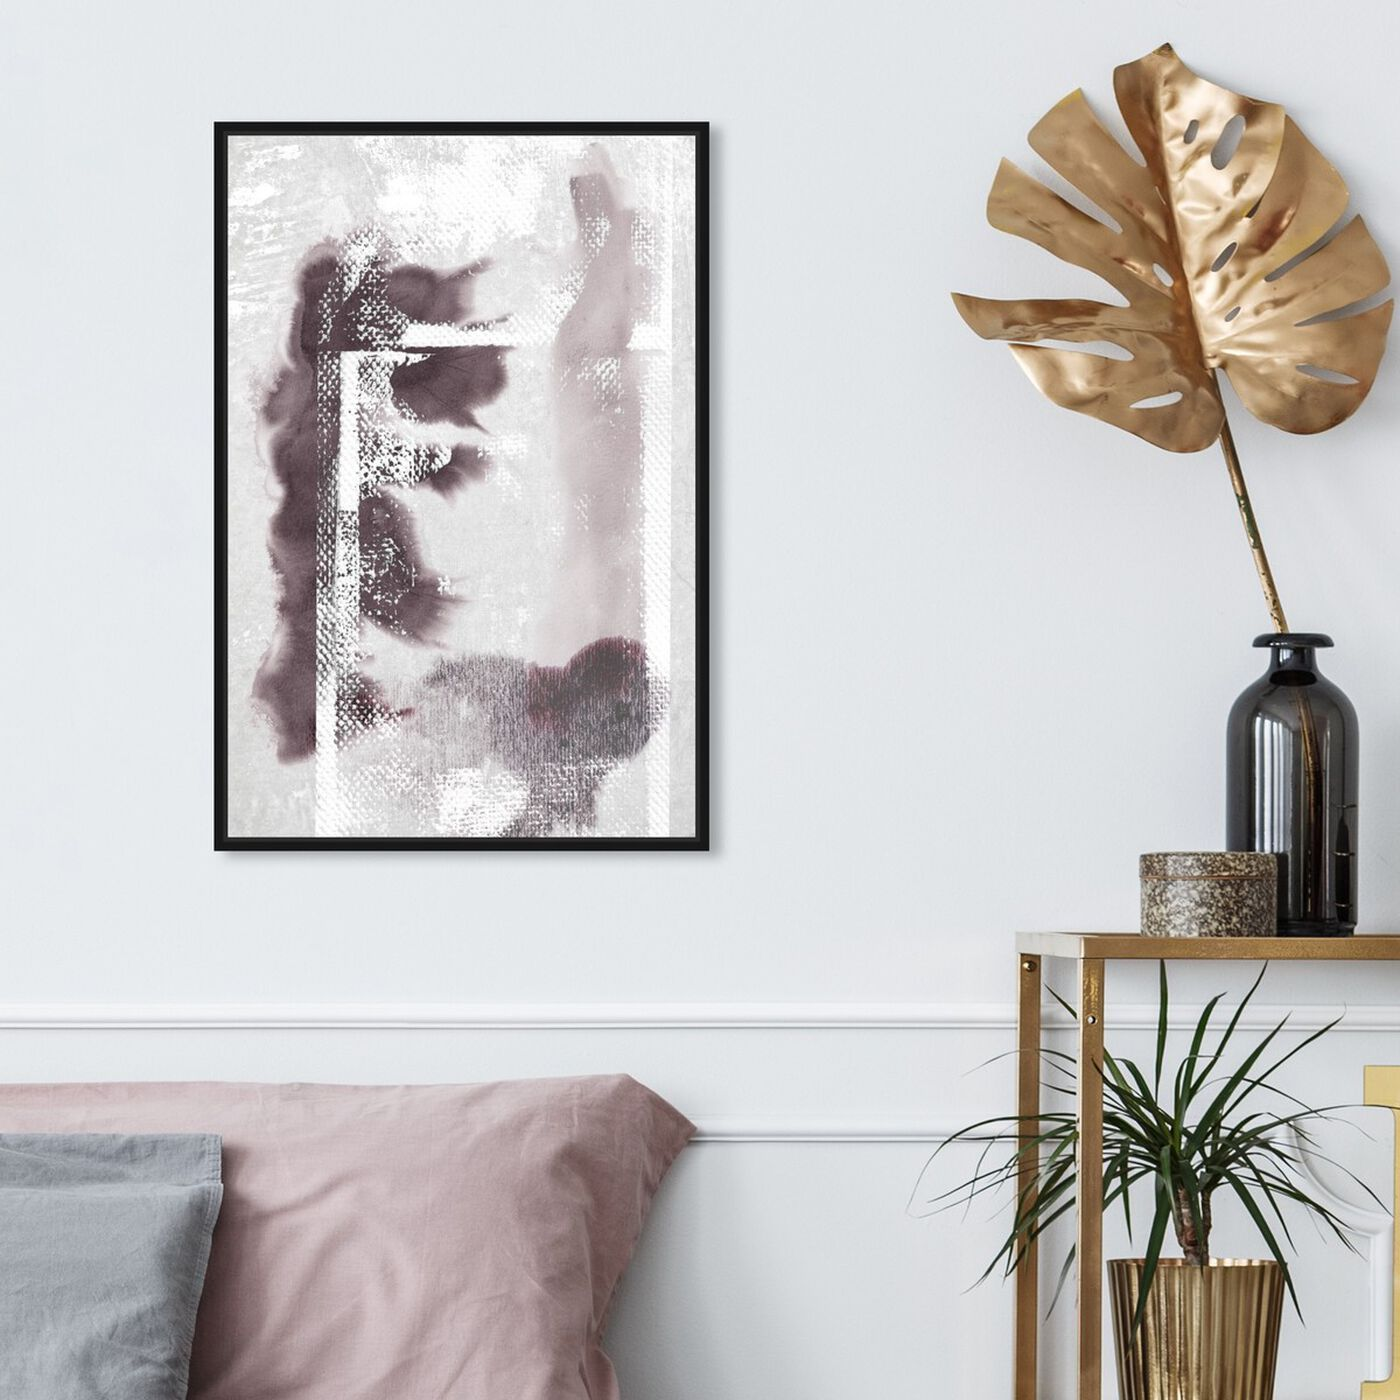 Hanging view of When Wiser and Older featuring abstract and paint art.